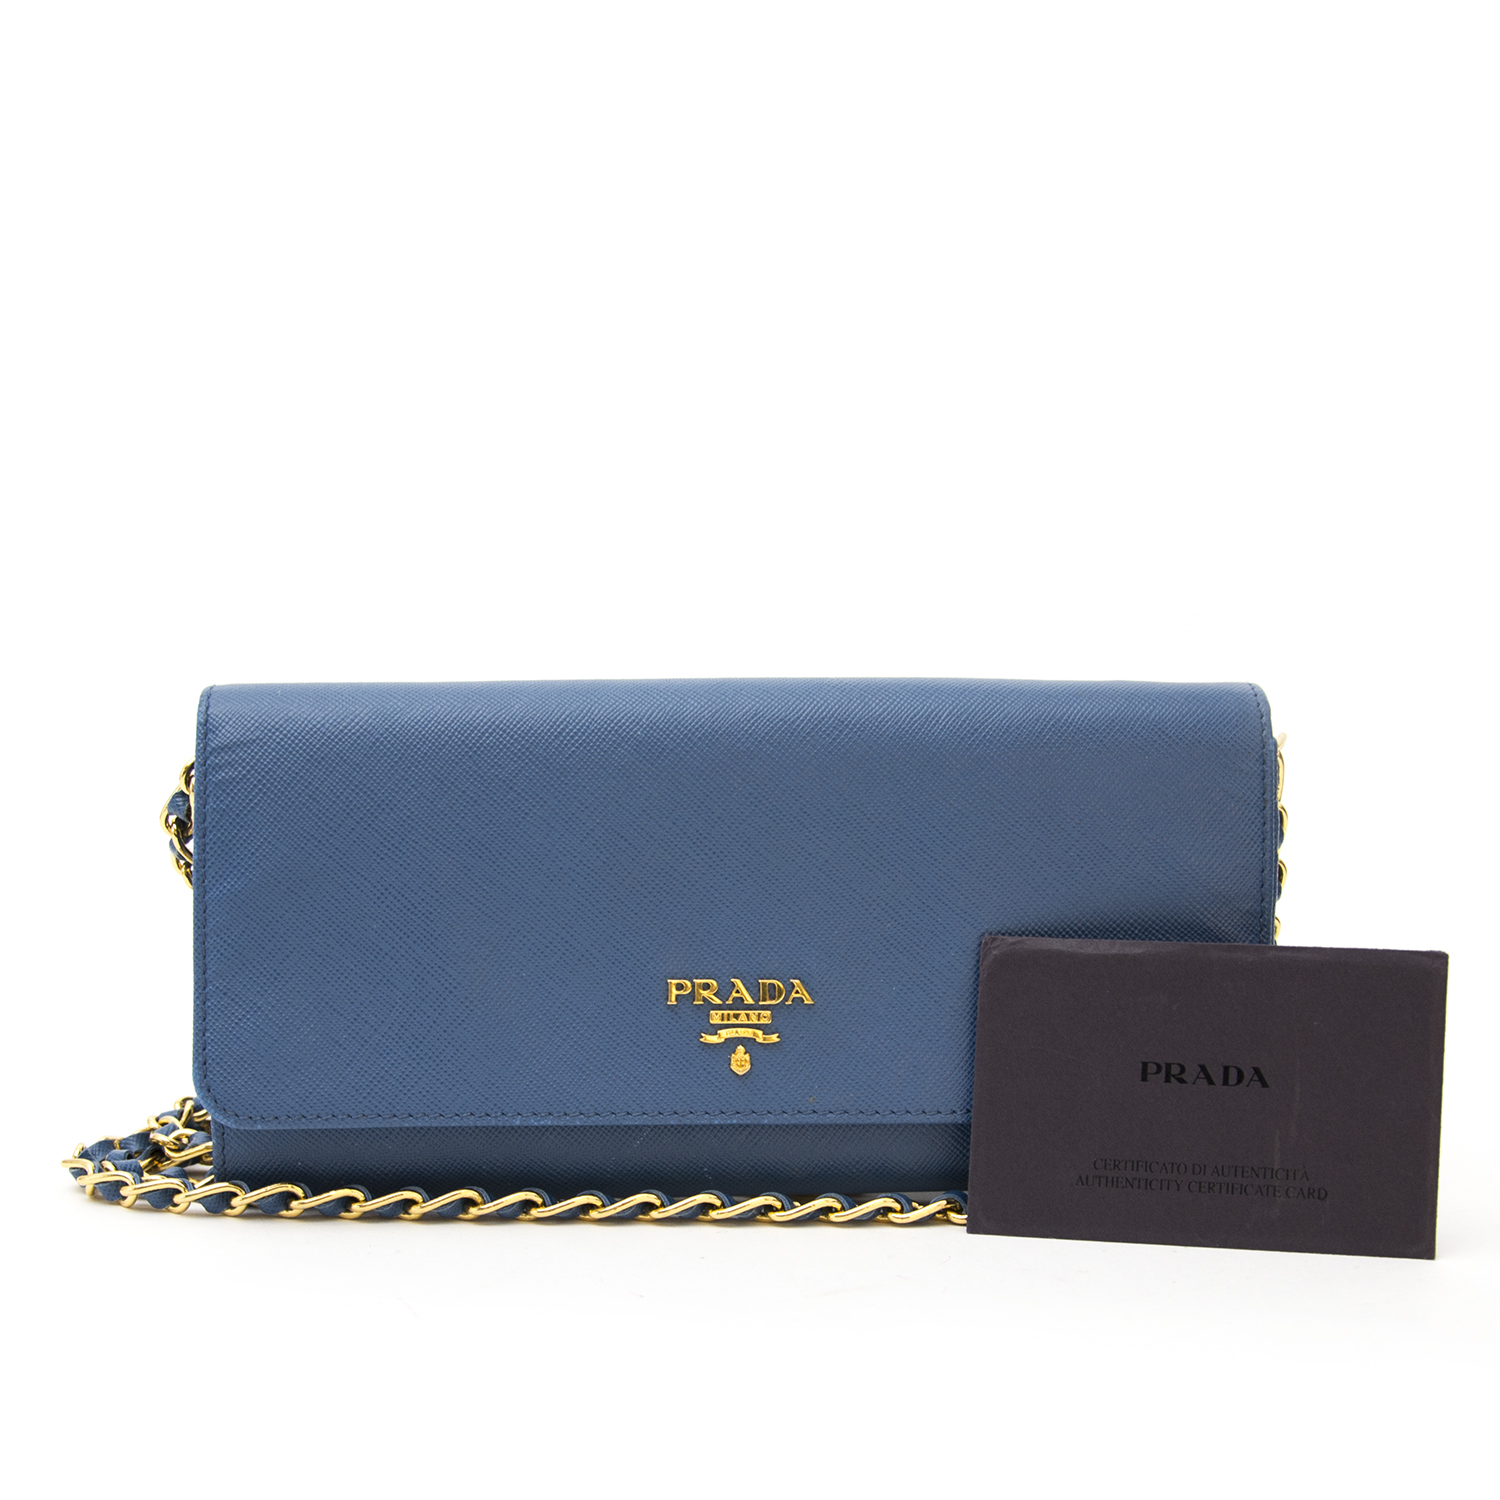 Vintage Prada blue wallet for the best price at Labellov webshop. Safe and secure online shopping with 100% authenticity. Vintage Prada bleu portefeuille pour le meilleur prix.